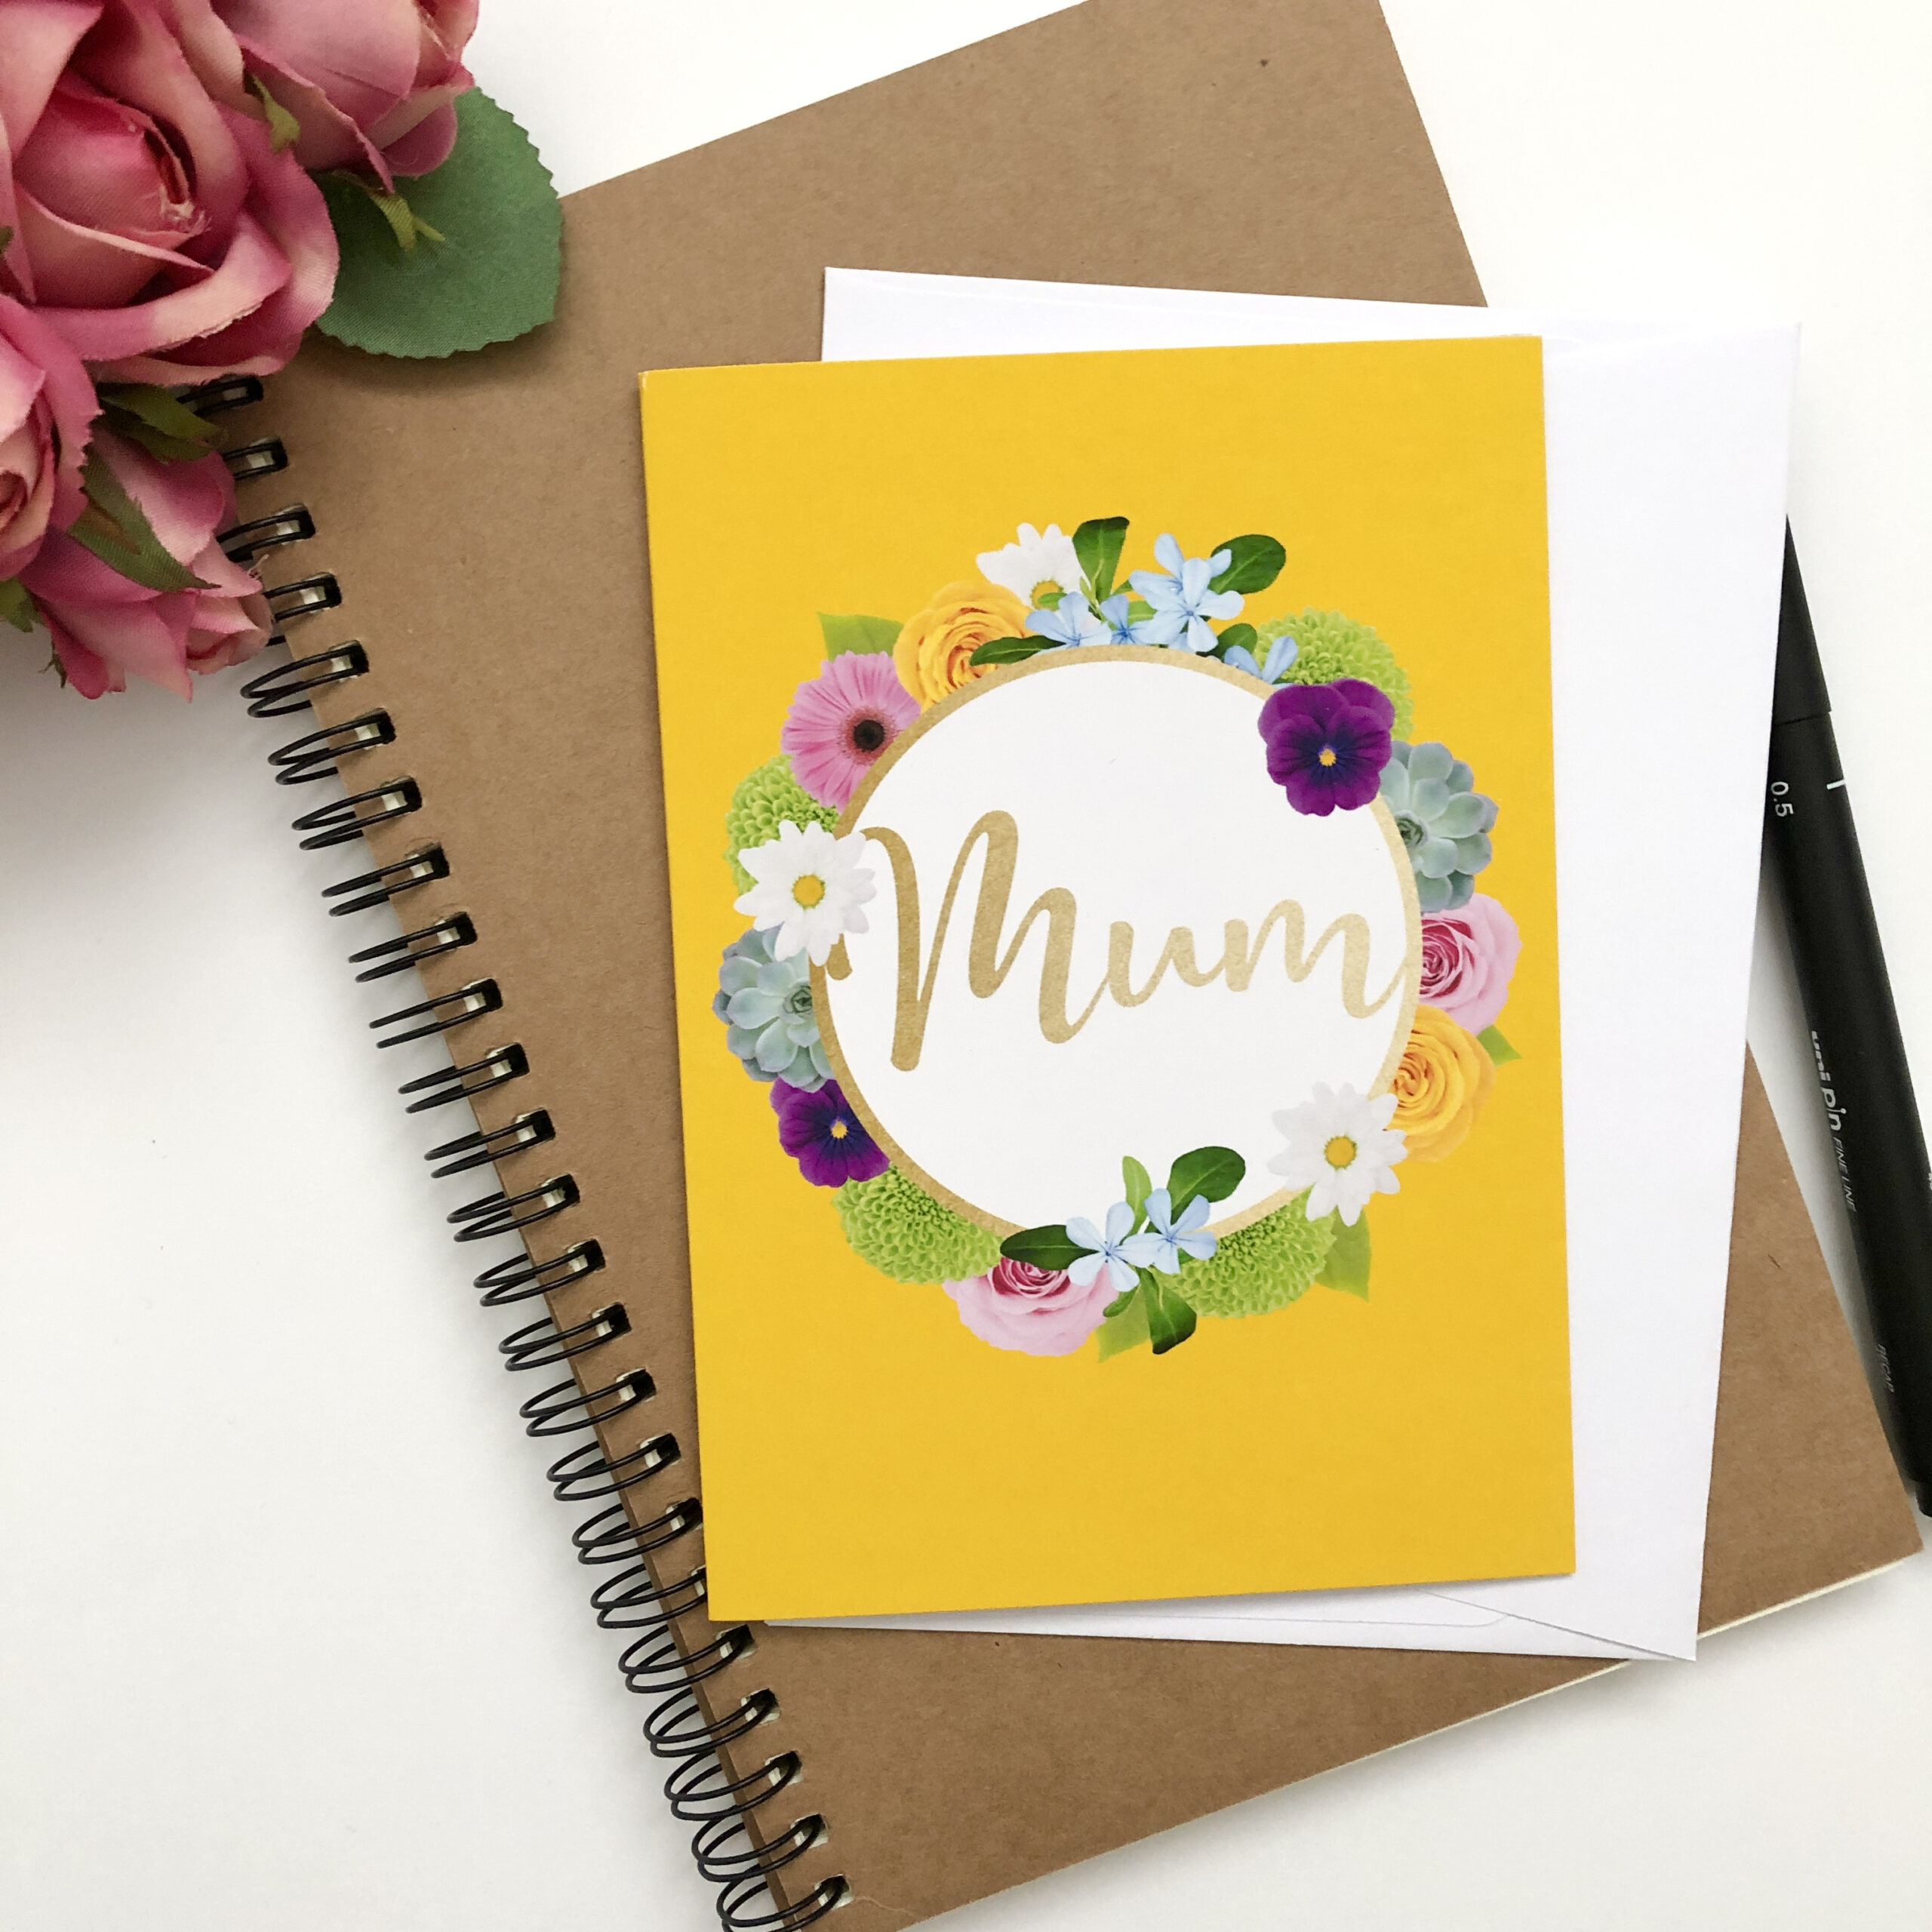 Floral Greetings cards for Mum featuring colourful flowers around gold lettering on a bright sanguine yellow background